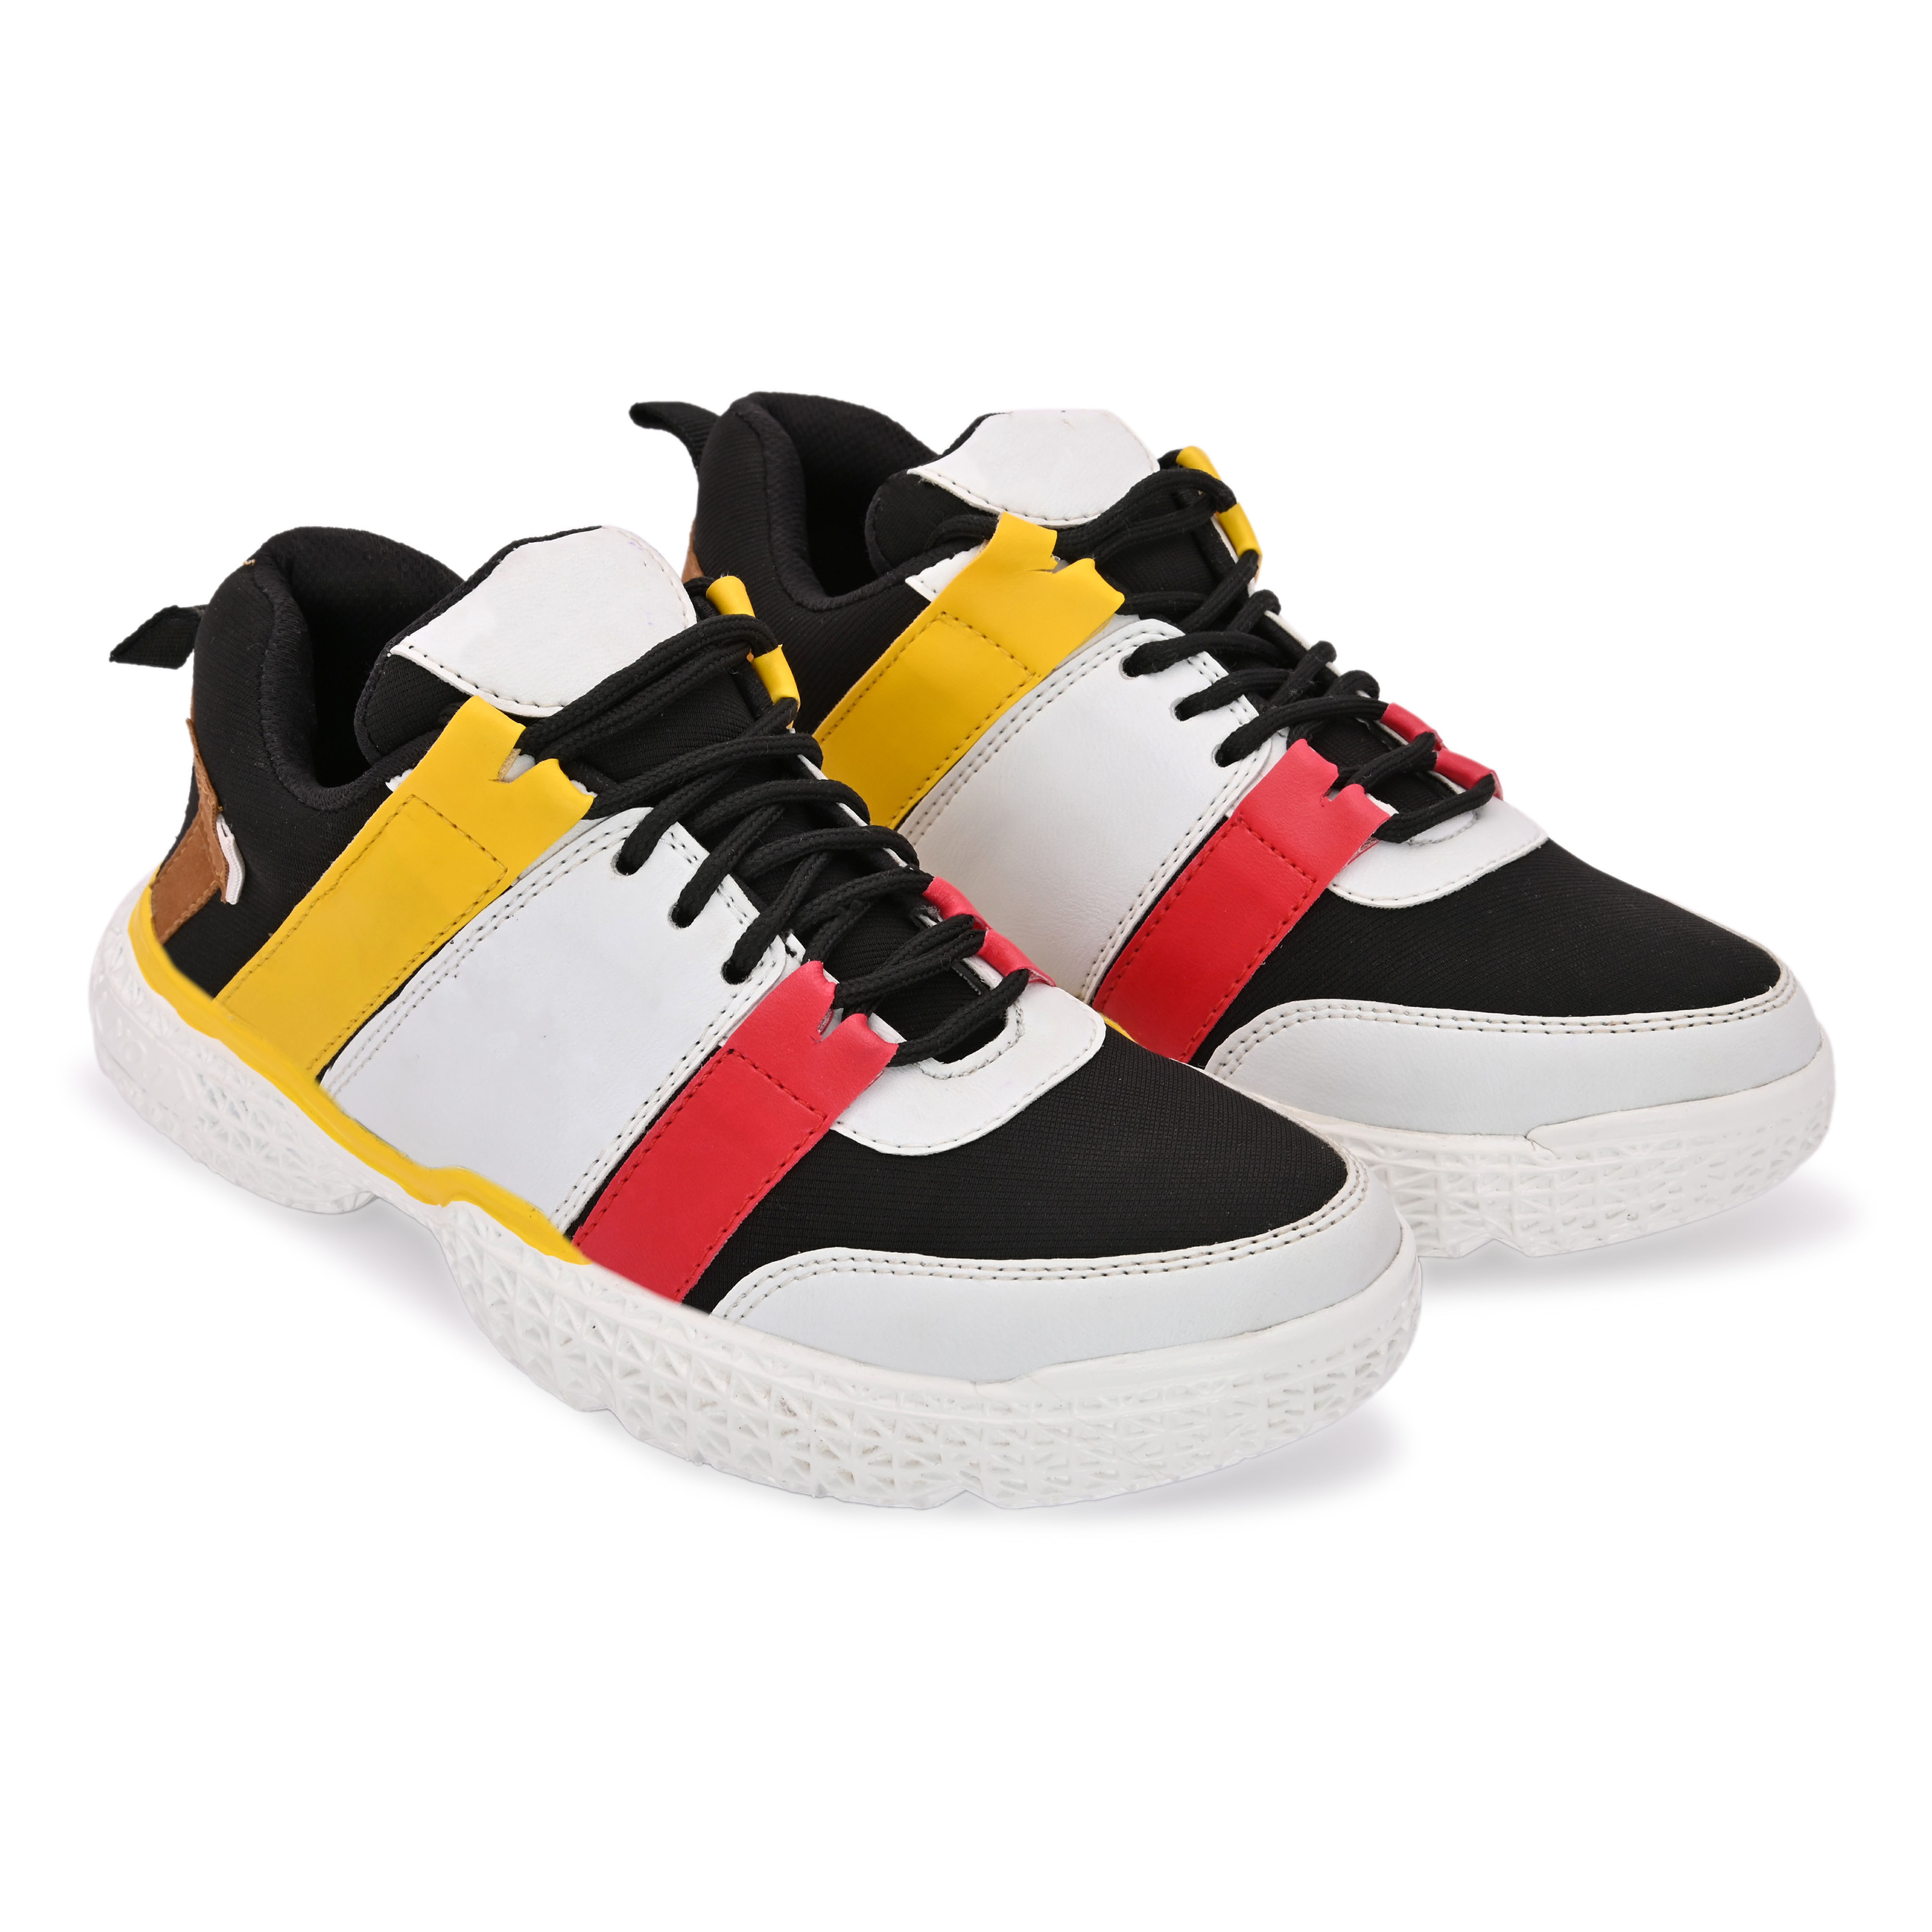 BRIFAR COMFORTABLE & TRENDY SPORTS SHOES ARE RELIABLE FOR ANY BFS0814YL (6-9, YELLOW, 4 PAIR)